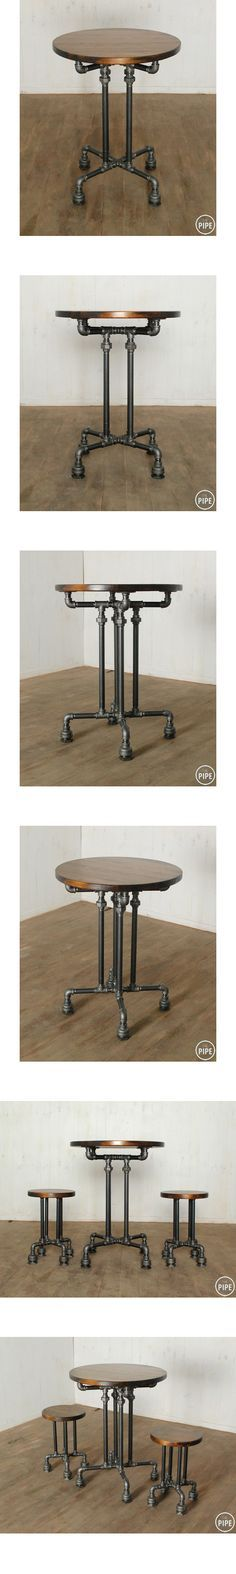 DIY table with black pipe from Gill-Roy's Hardware! - DIY table with black pipe from Gill-Roy's Hardware! DIY table with black pipe from Gill-Roy's Hardware! Pipe Furniture, Industrial Furniture, Furniture Projects, Home Projects, Furniture Vintage, Pallet Furniture, Bedroom Furniture, Outdoor Furniture, Arte Pallet